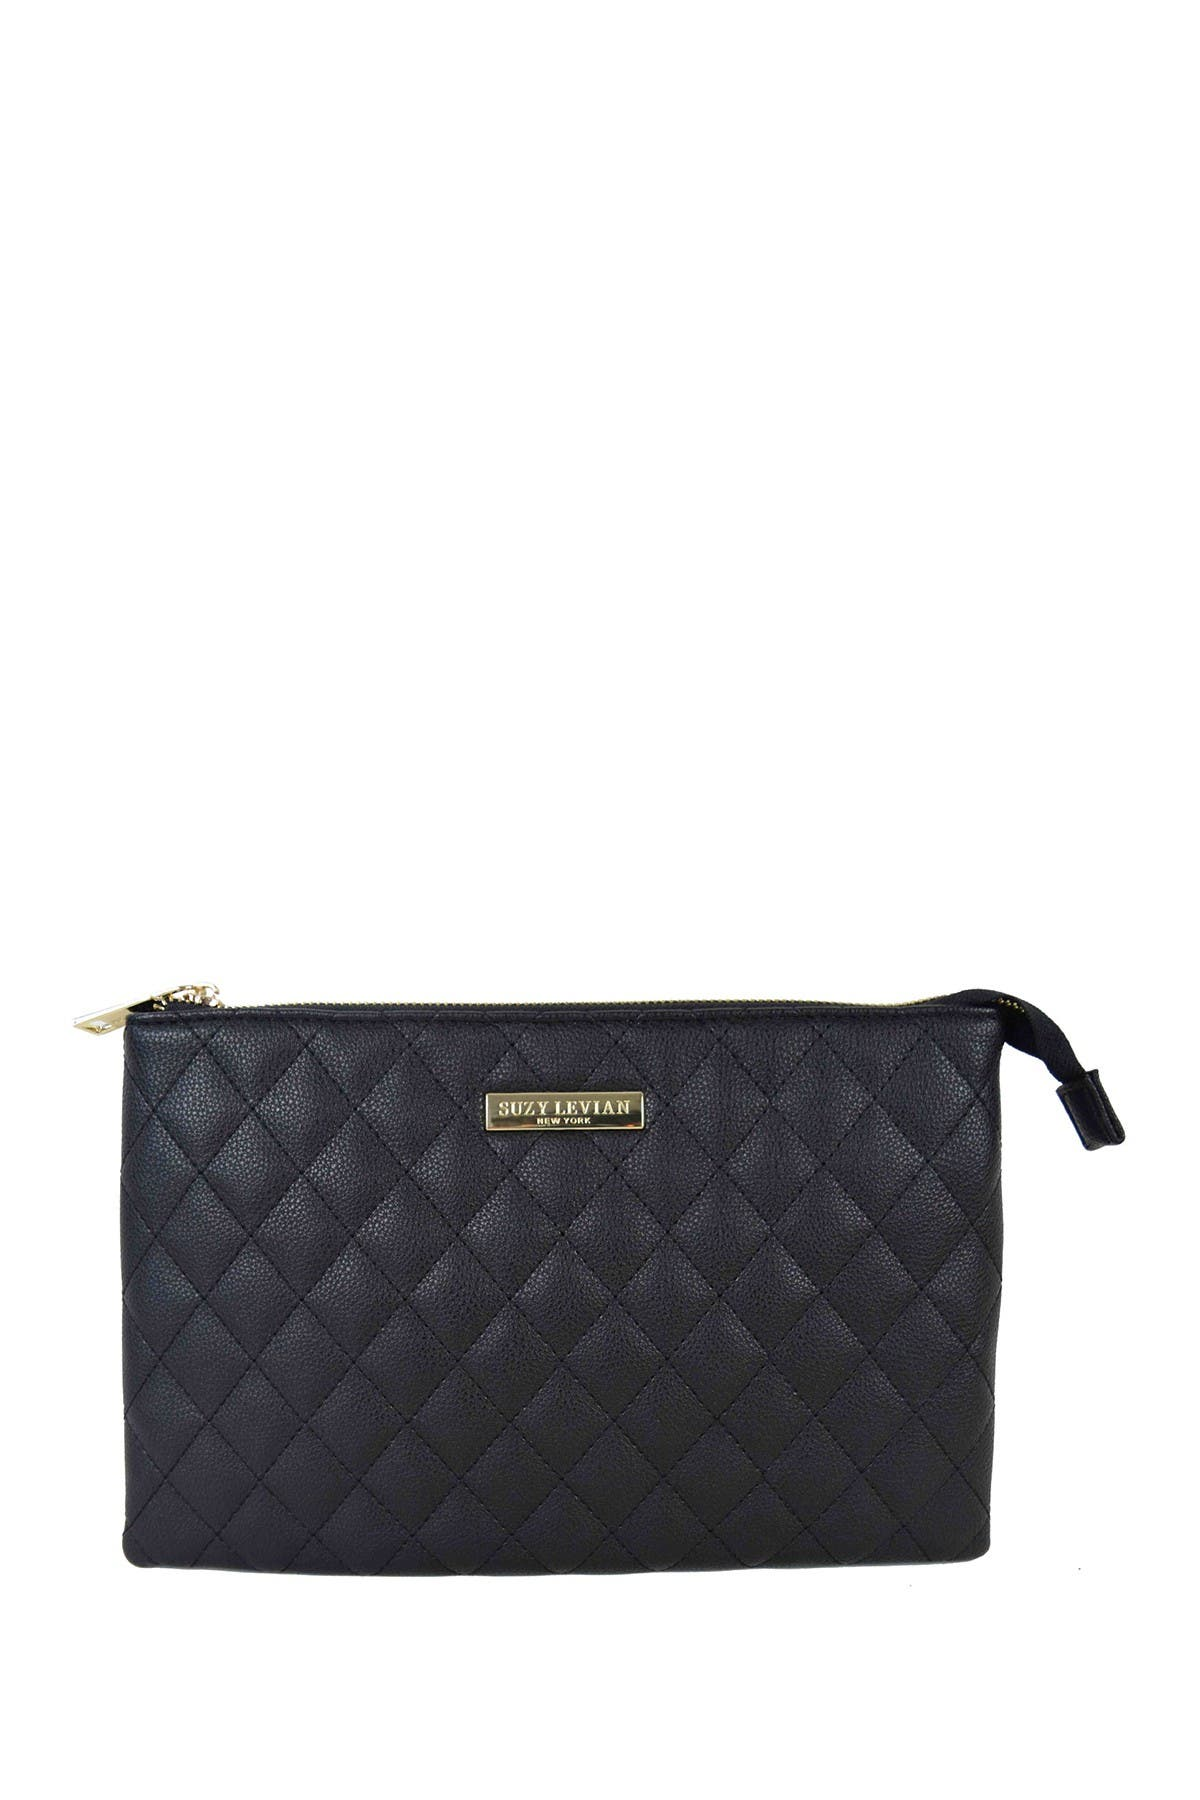 Image of Suzy Levian Medium Faux Leather Quilted Clutch